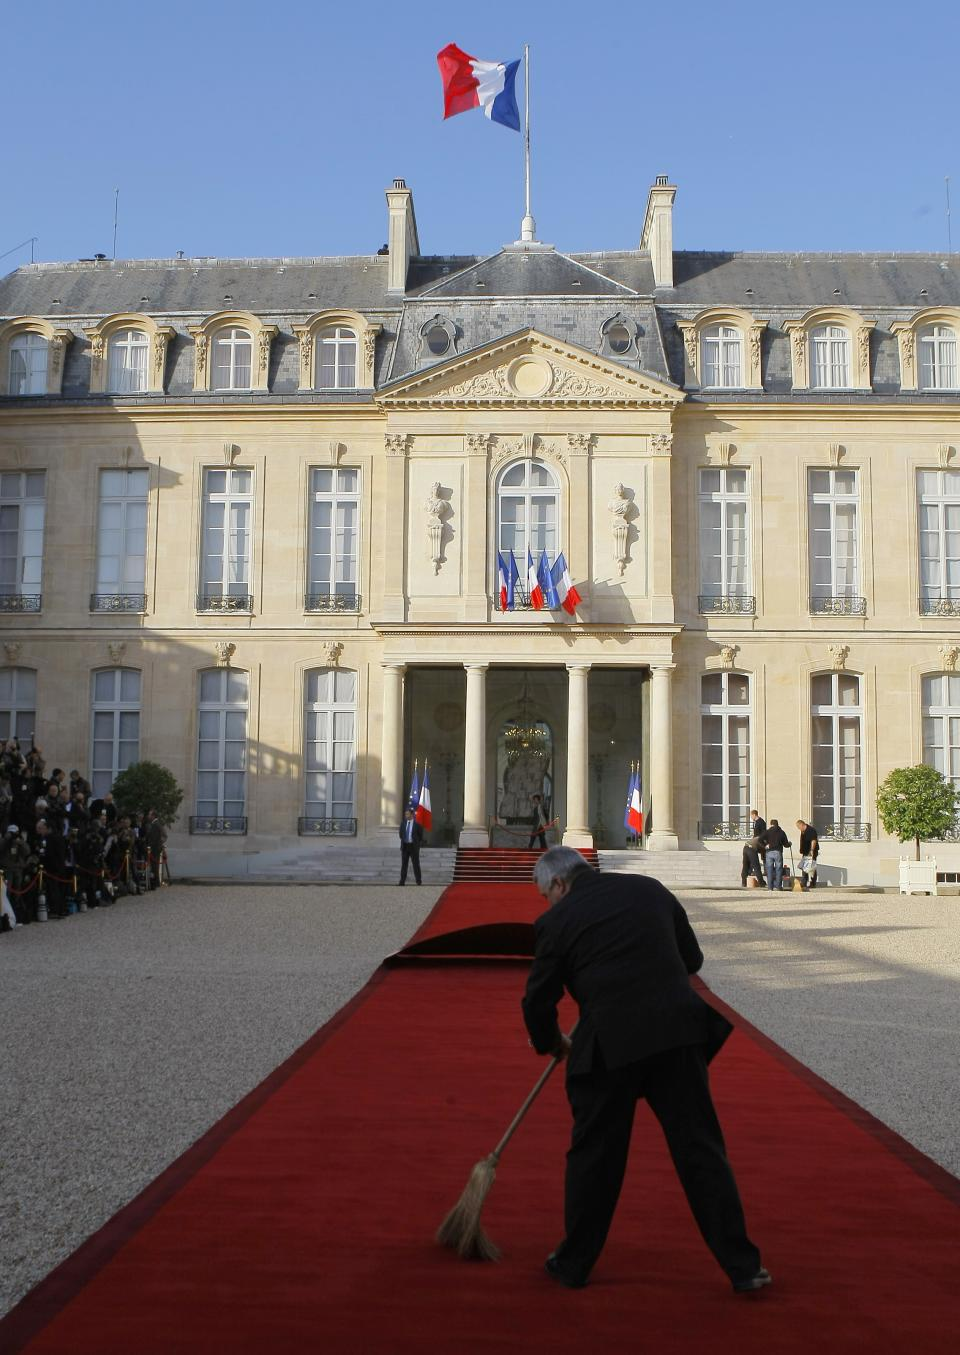 A worker prepares the red carpet for the takeover ceremony between outgoing President Nicolas Sarkozy and President-elect Francois Hollande, Tuesday, May 15, 2012, at the Elysee Palace in Paris.  (AP Photo/Jacques Brinon)